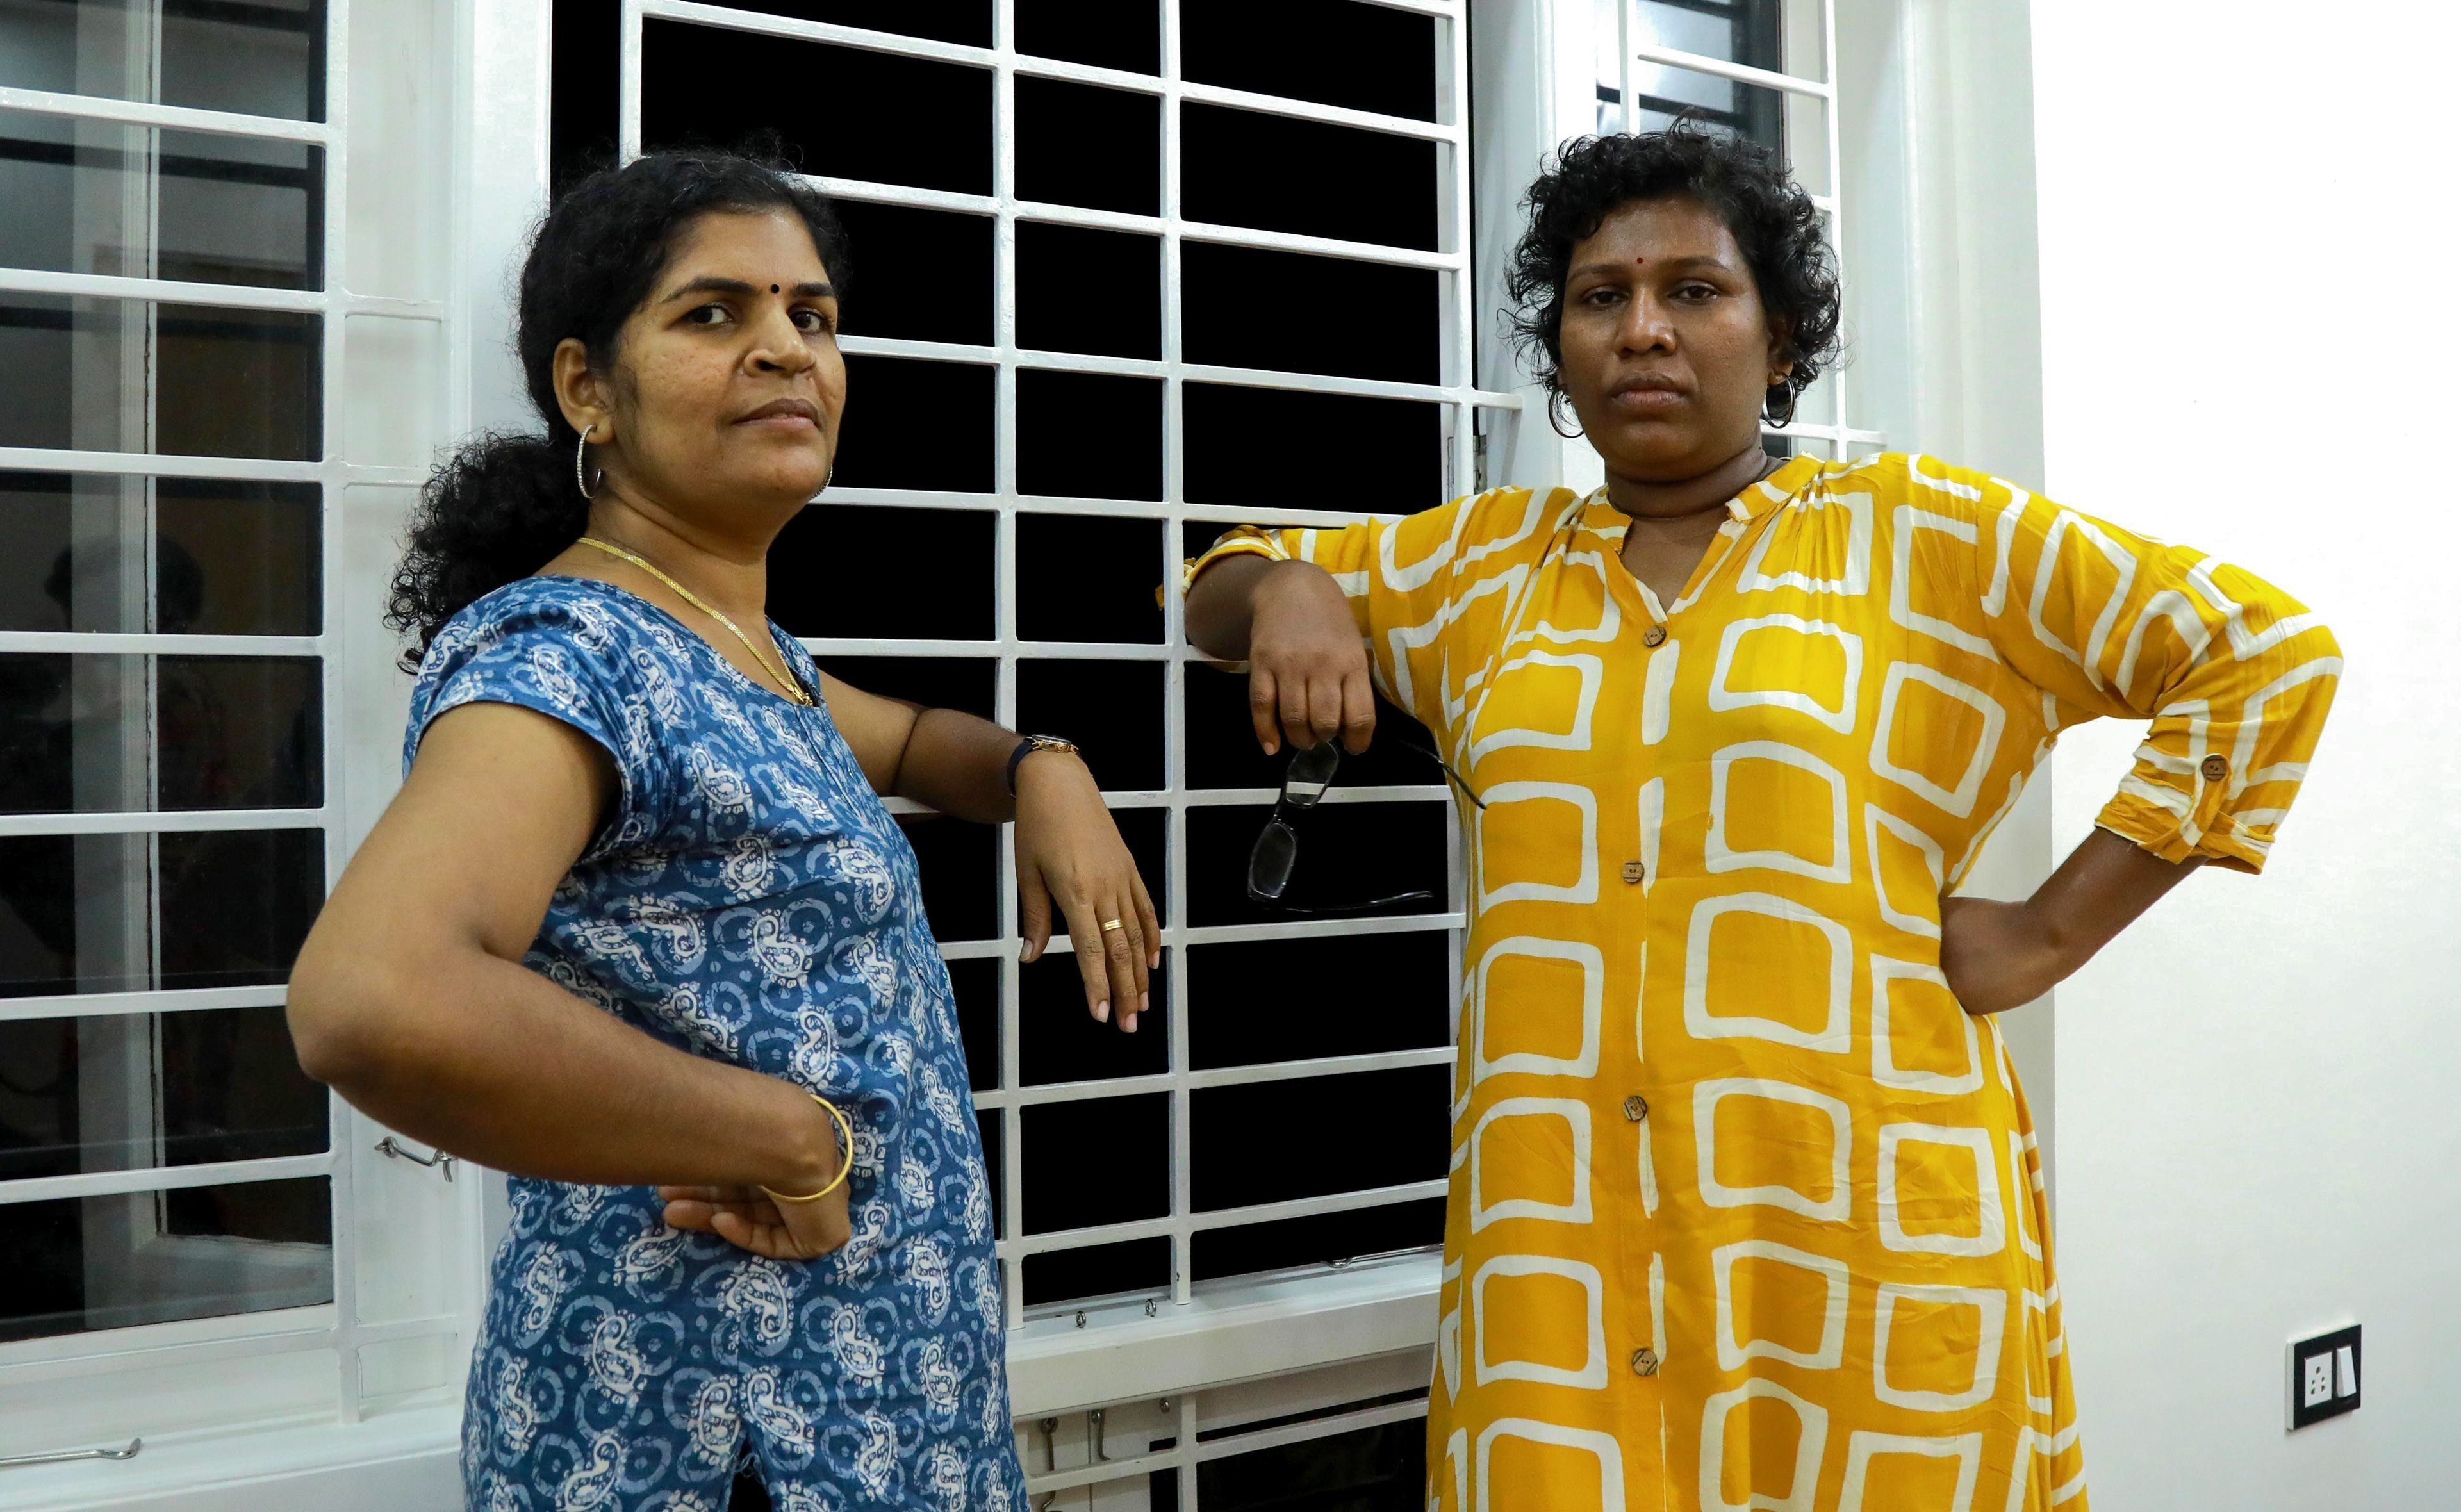 'I Will Not Say Sorry': Kanakadurga Refuses To Back Down After Family Disowns Her For Sabarimala